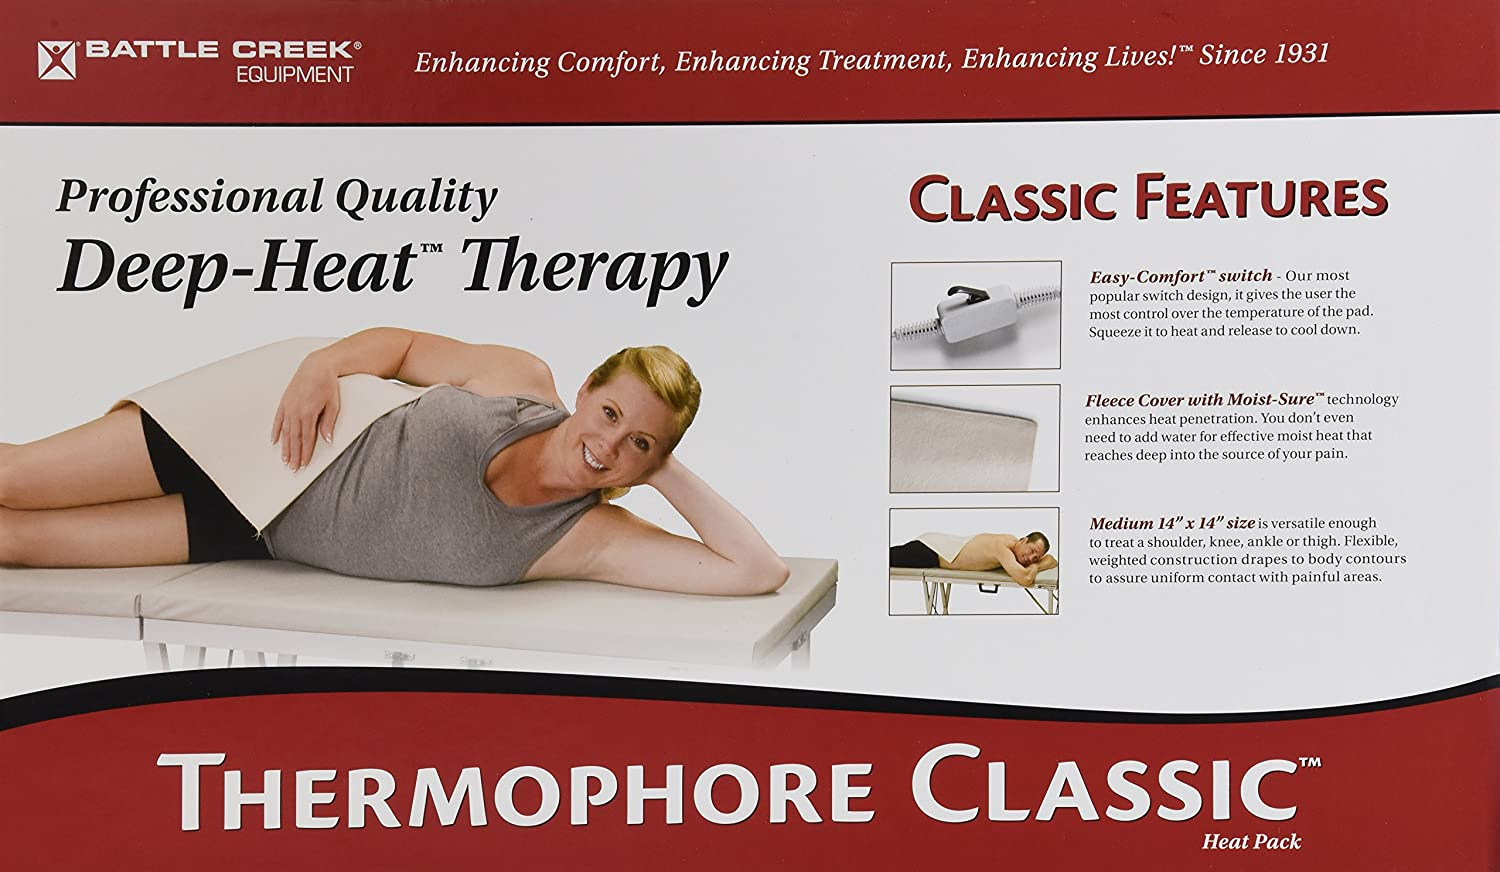 Thermophore Heating Pad, Medium, 14 Inch x 14 Inch